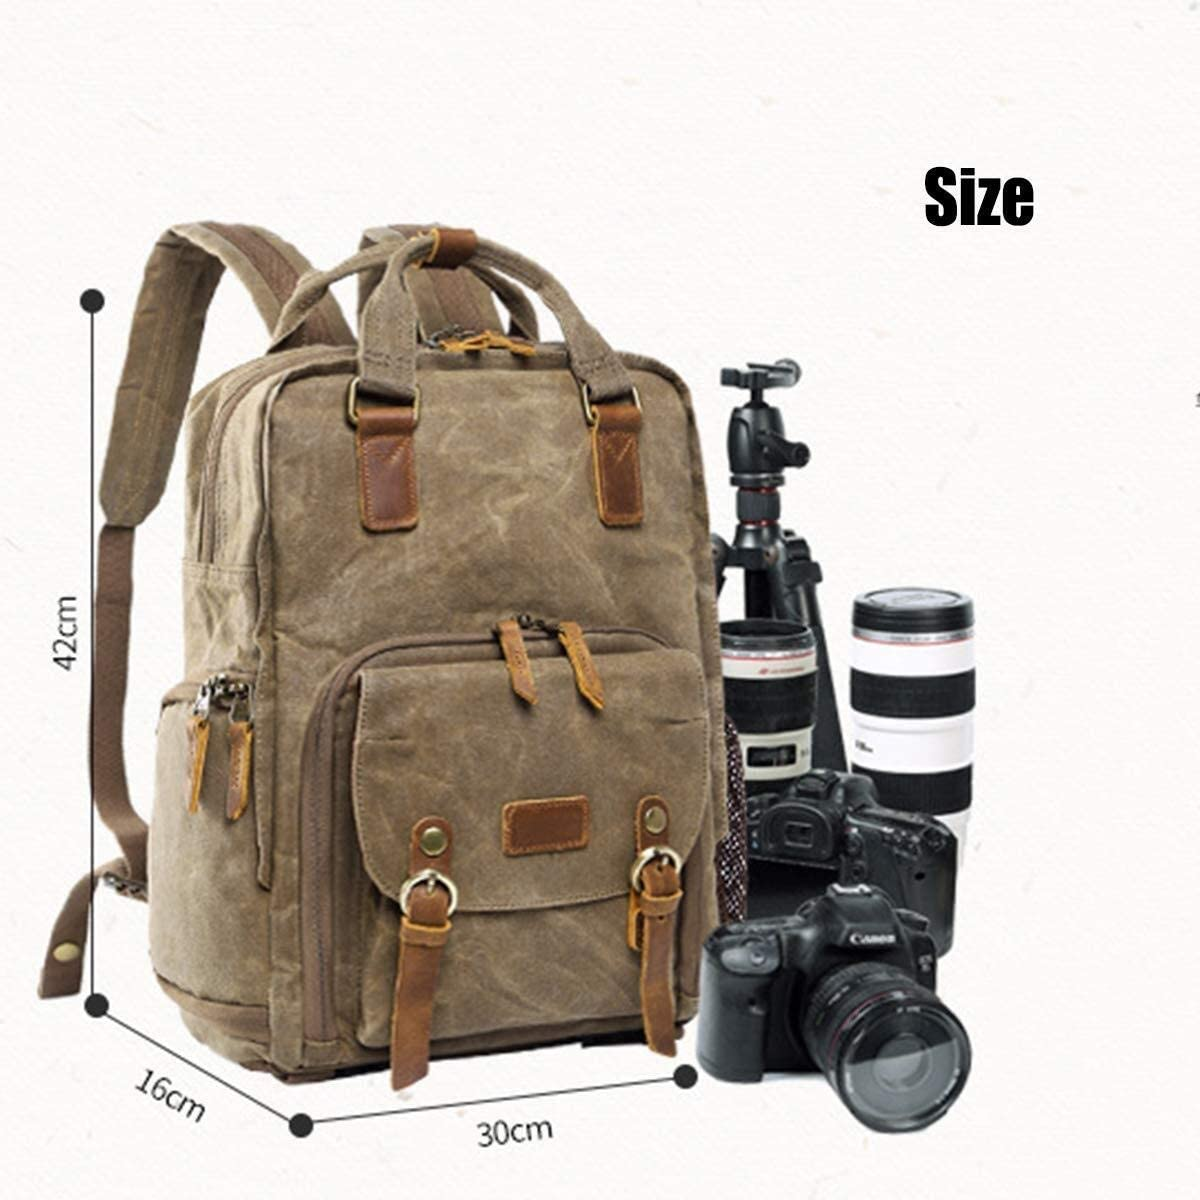 Outdoor camping folding bed DSLR SLR Camera Backpack,Shockproof Waterproof Anti Theft Photography Casual Travel Bag Canvas Genuine Leather Camera Rucksack For Laptop Tripod And Accessories 301642cm